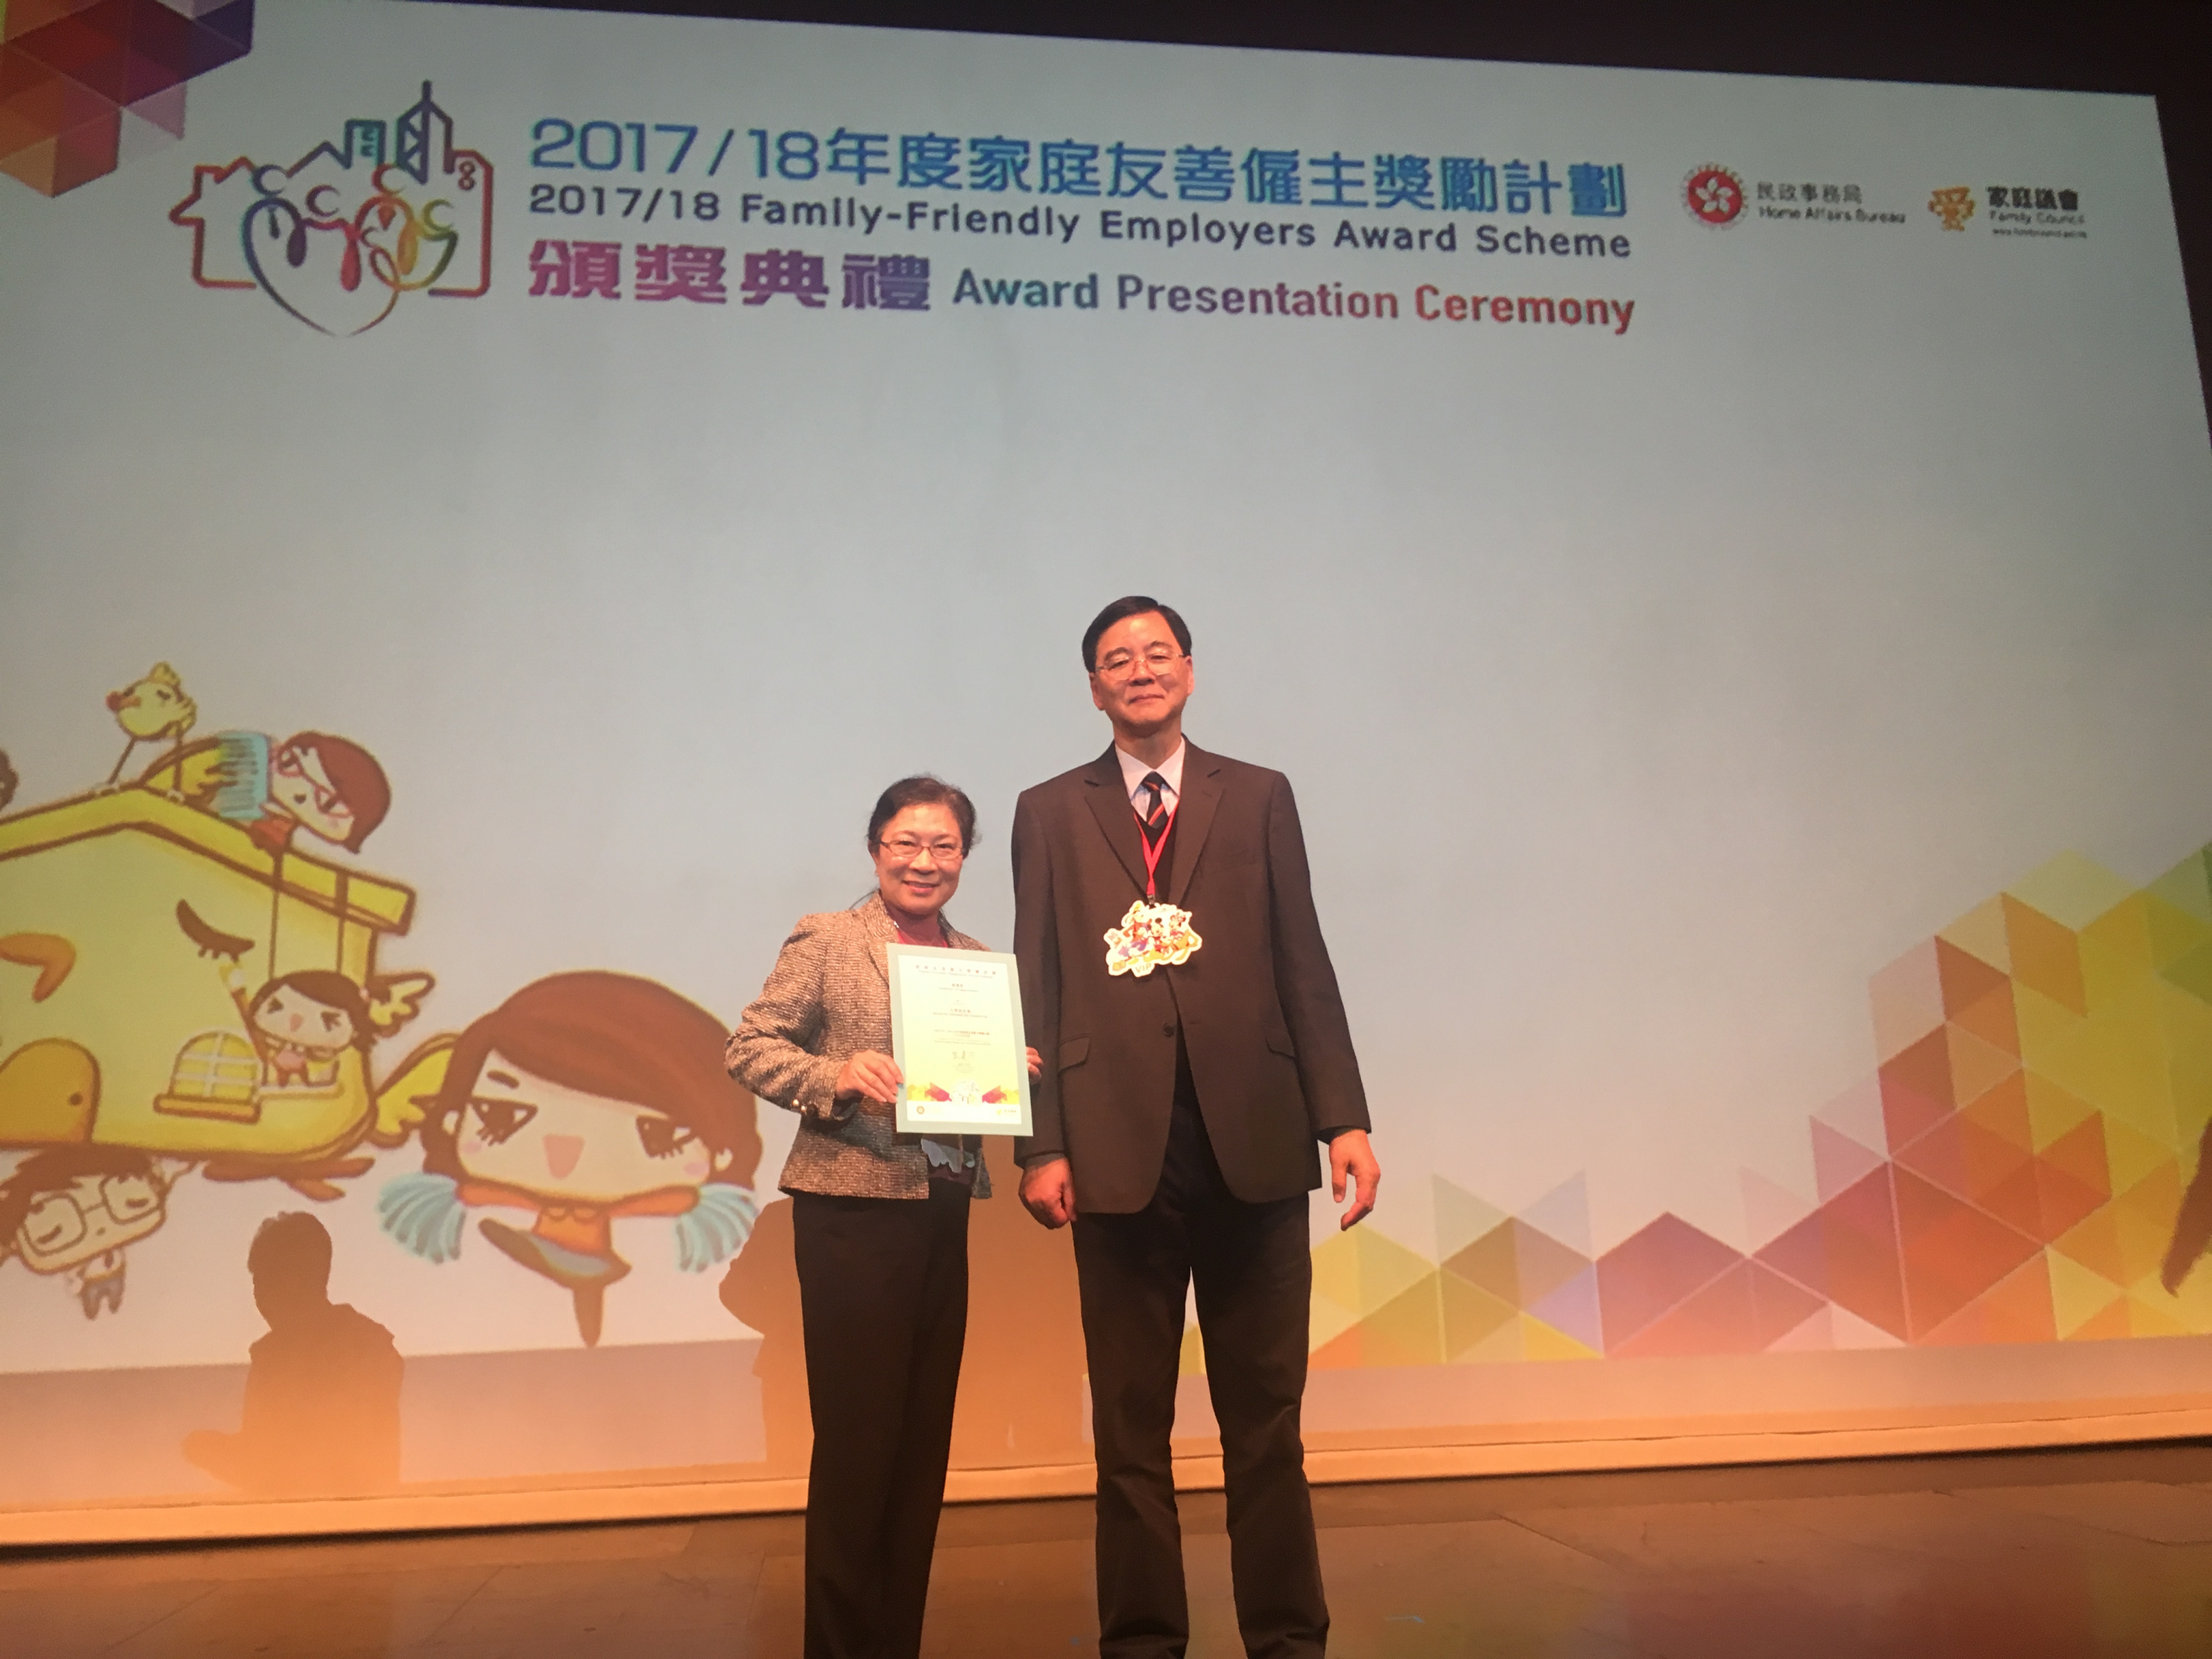 Prof. Shek Tan-lei, Daniel, Chairman of the Family Council (right) presents the 'Meritorious Family-Friendly Employers 2017/18' award to Ms. Corinna Lee, Director of Human Resources, CUHK. (left)